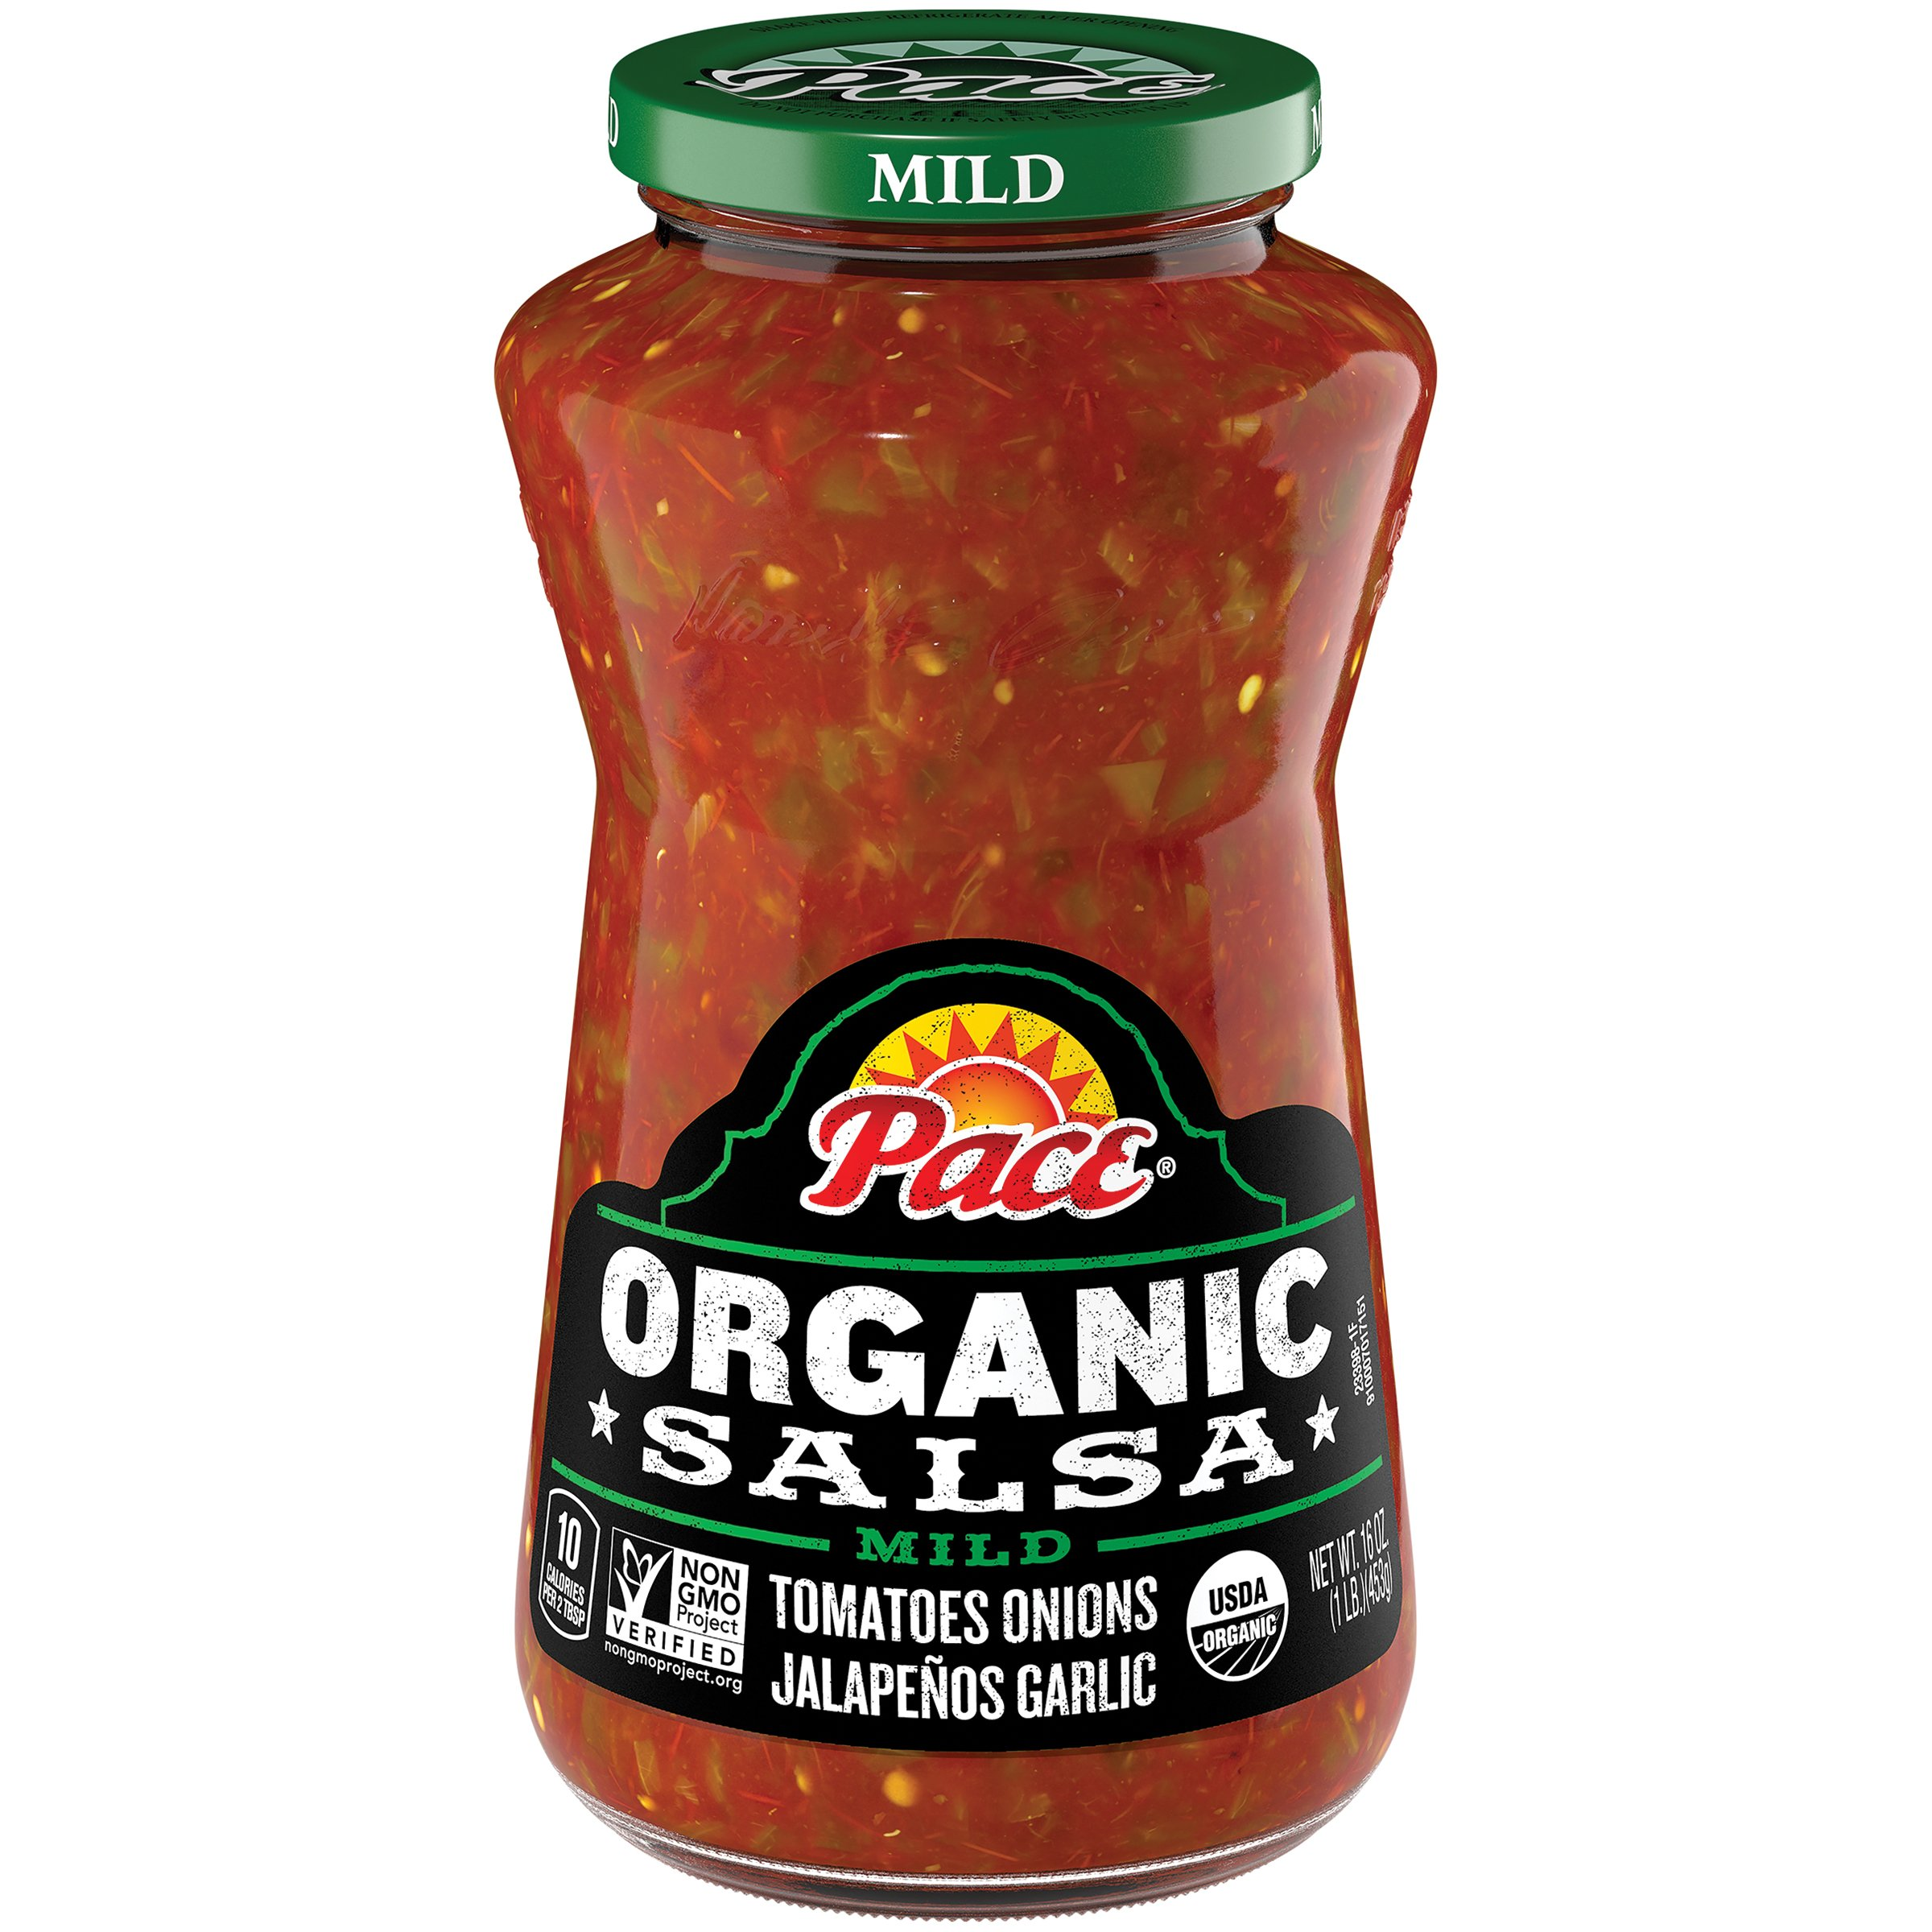 Pace Organic Salsa, Mild, 16 Ounce (Packaging May Vary) by Pace